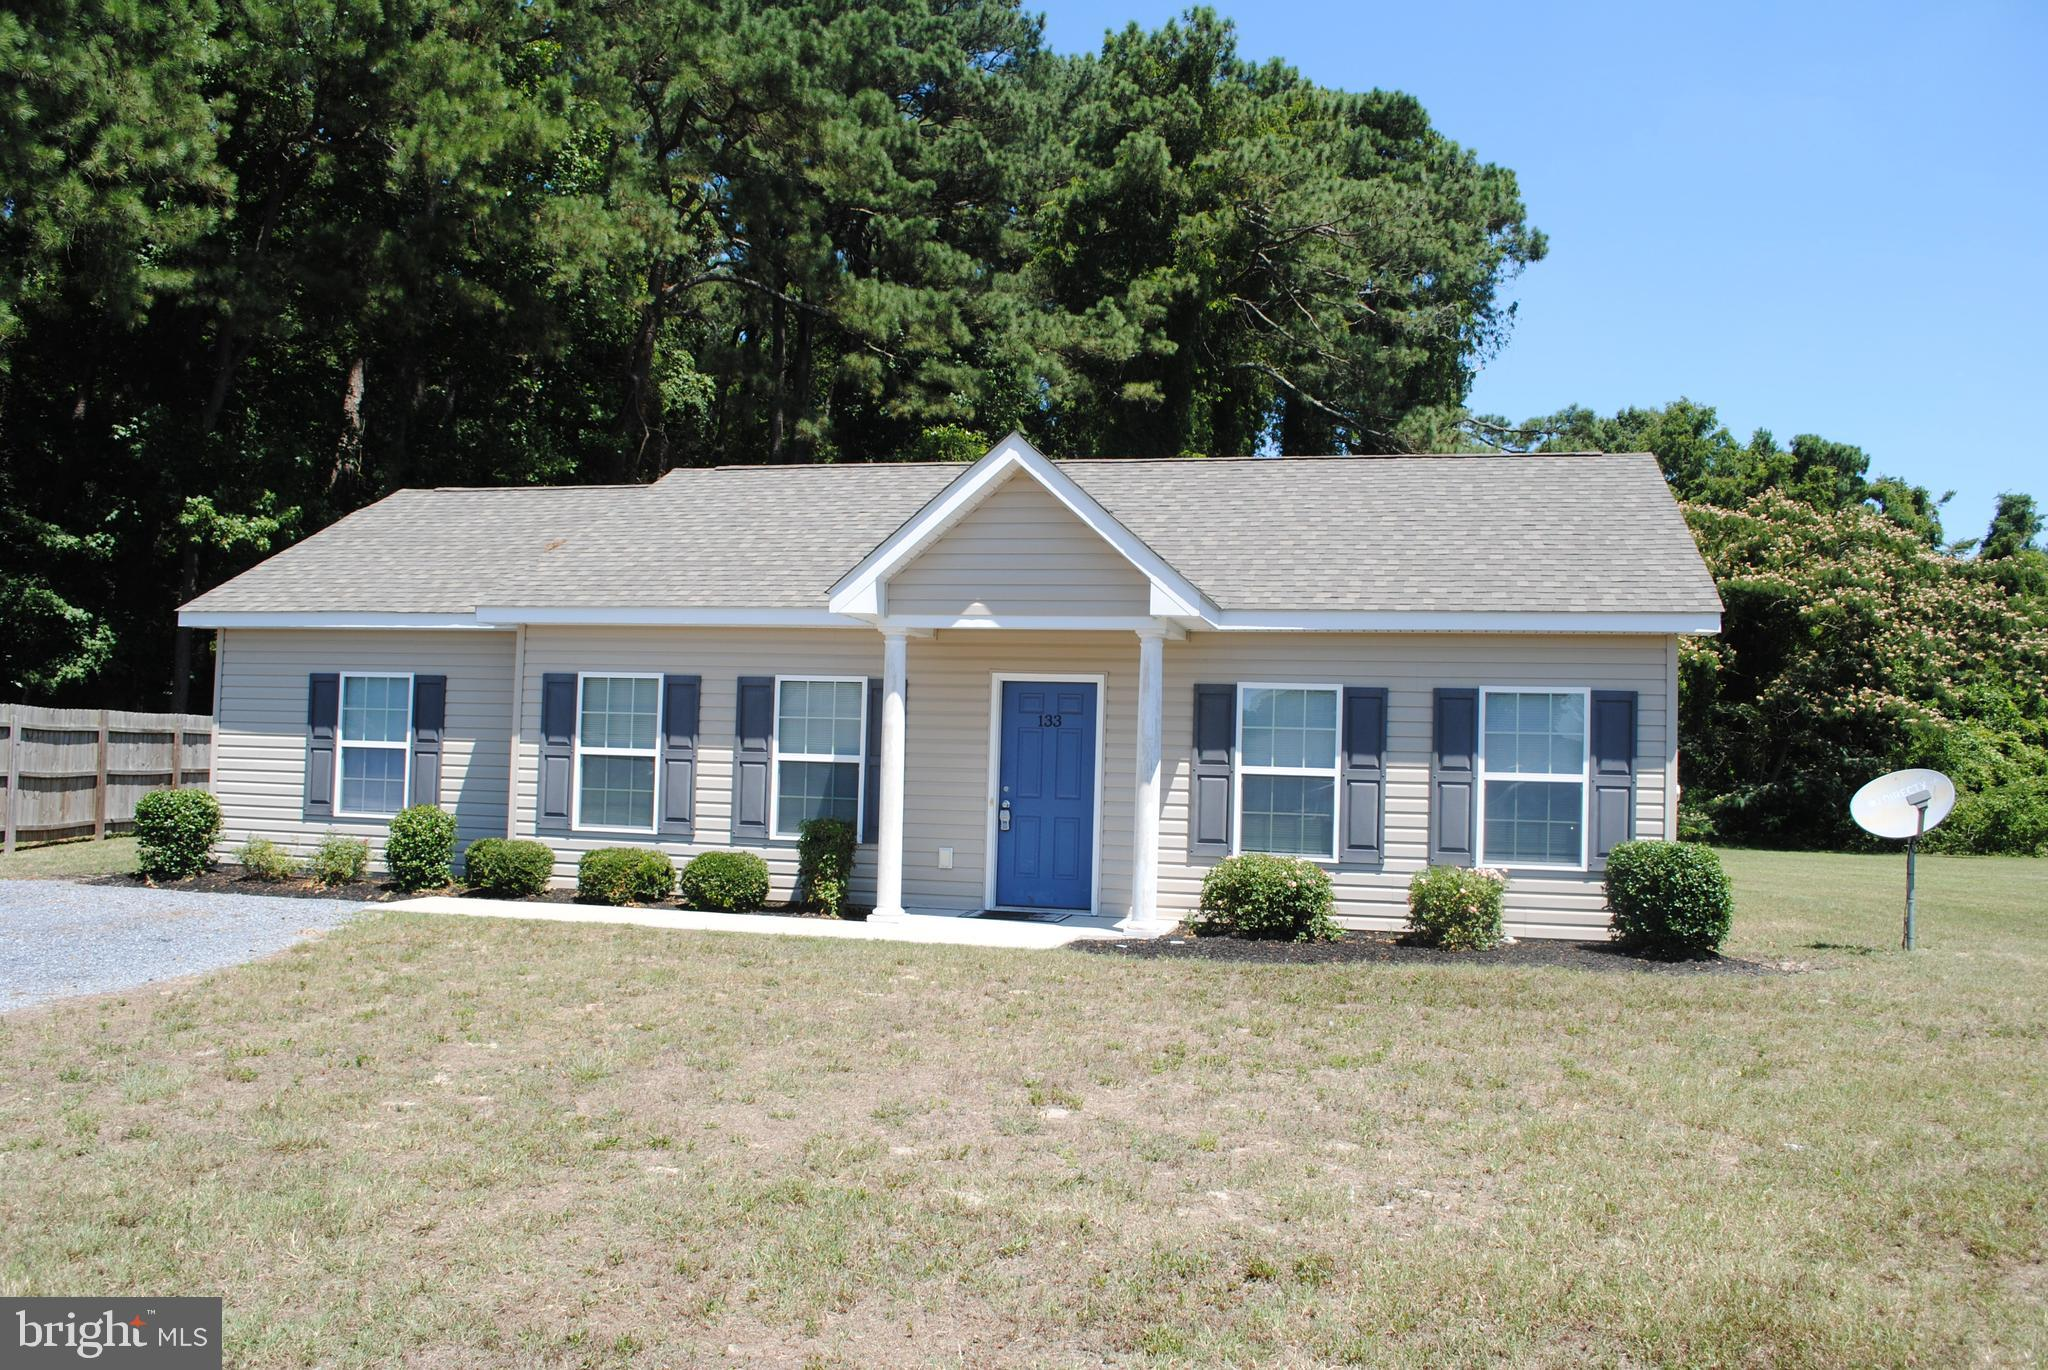 Come take a look at this 3 bedroom, 3 full bath rancher built in 2015. The stick built home offers a